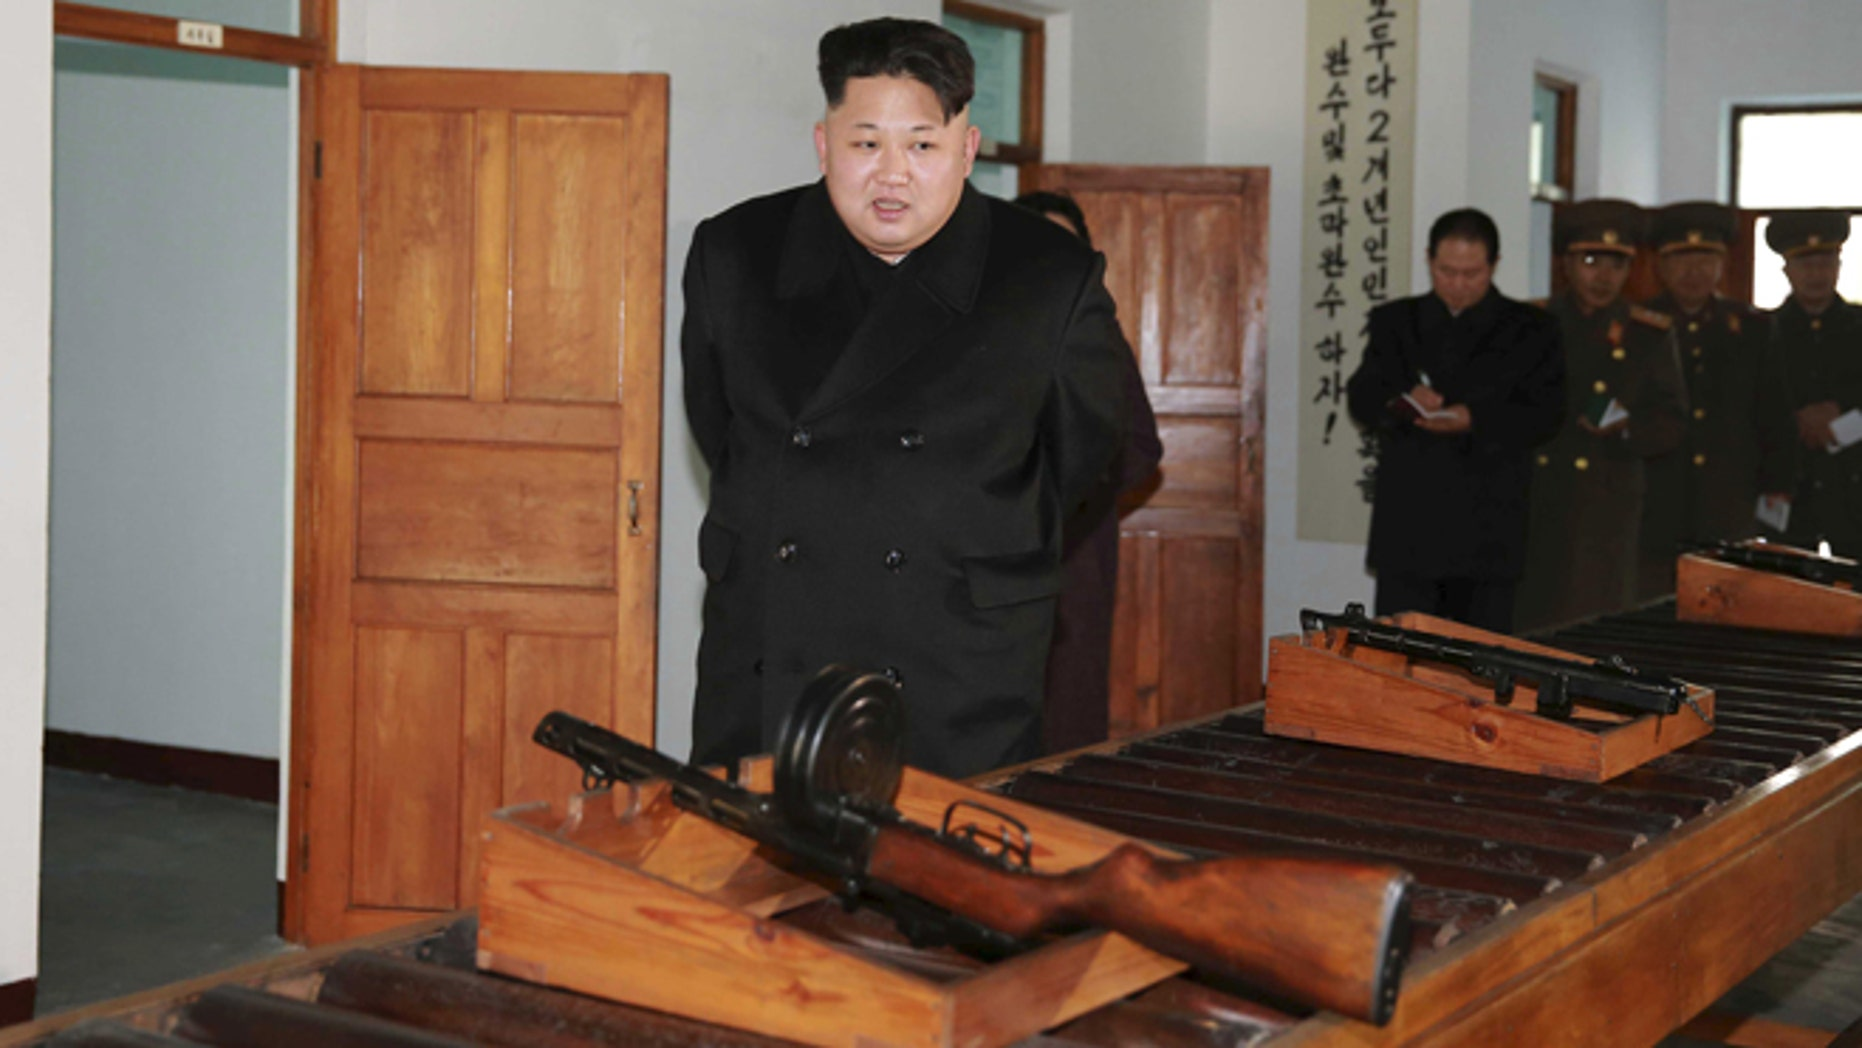 Dec. 10, 2015: North Korean leader Kim Jong Un visits the Phyongchon Revolutionary Site, in this undated photo released by North Korea's Korean Central News Agency (KCNA) in Pyongyang